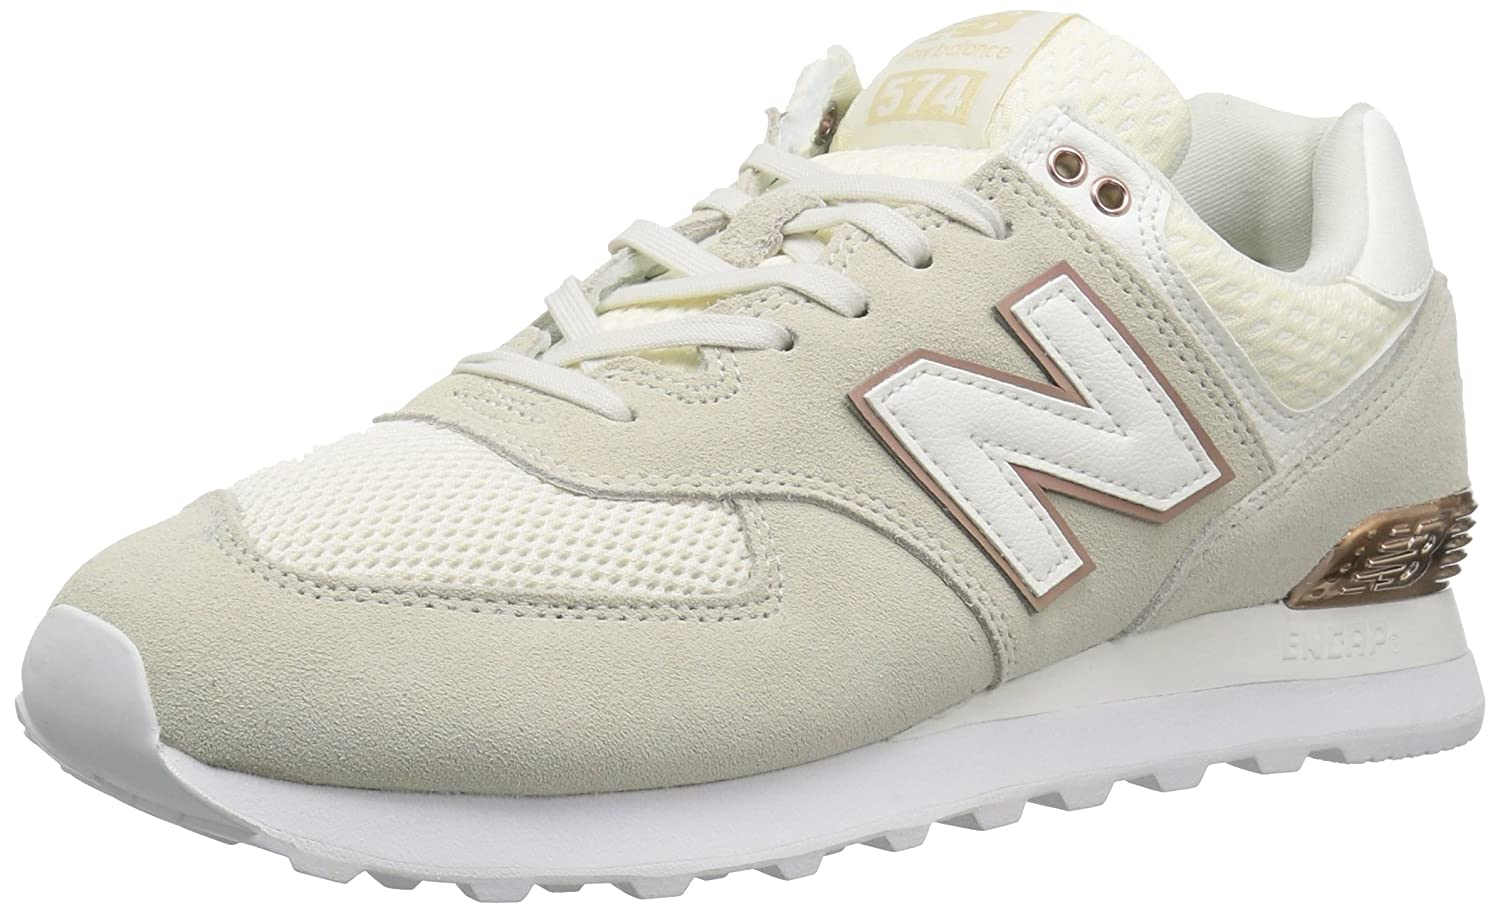 New Balance Women's 574v2 Sneaker B0751SFJ9J 9 B(M) US|Sea Salt/Rose Gold/Metallic